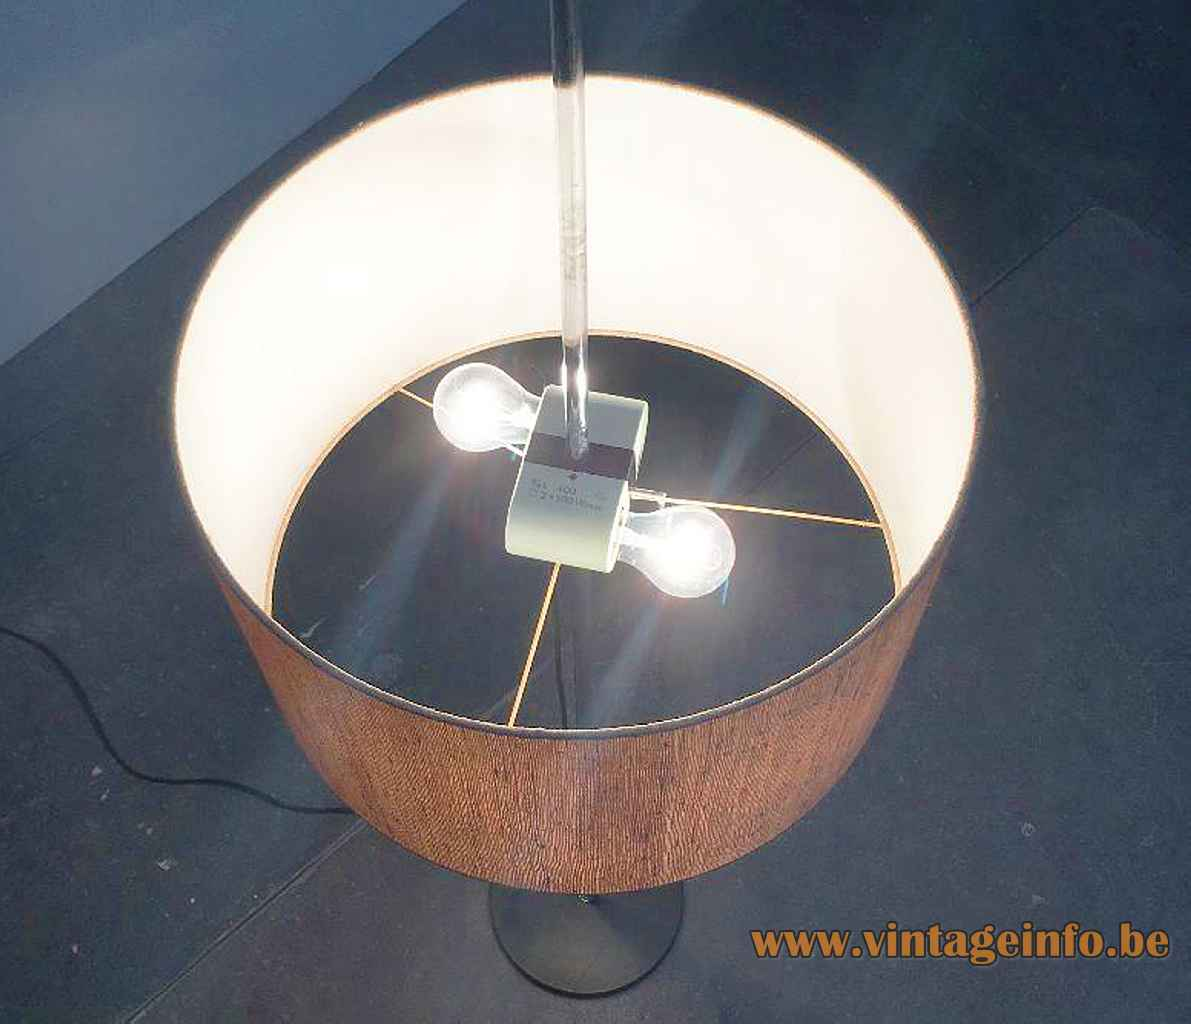 1960s Staff floor lamp round black metal base chrome rod fabric lampshade E27 sockets Germany 1970s